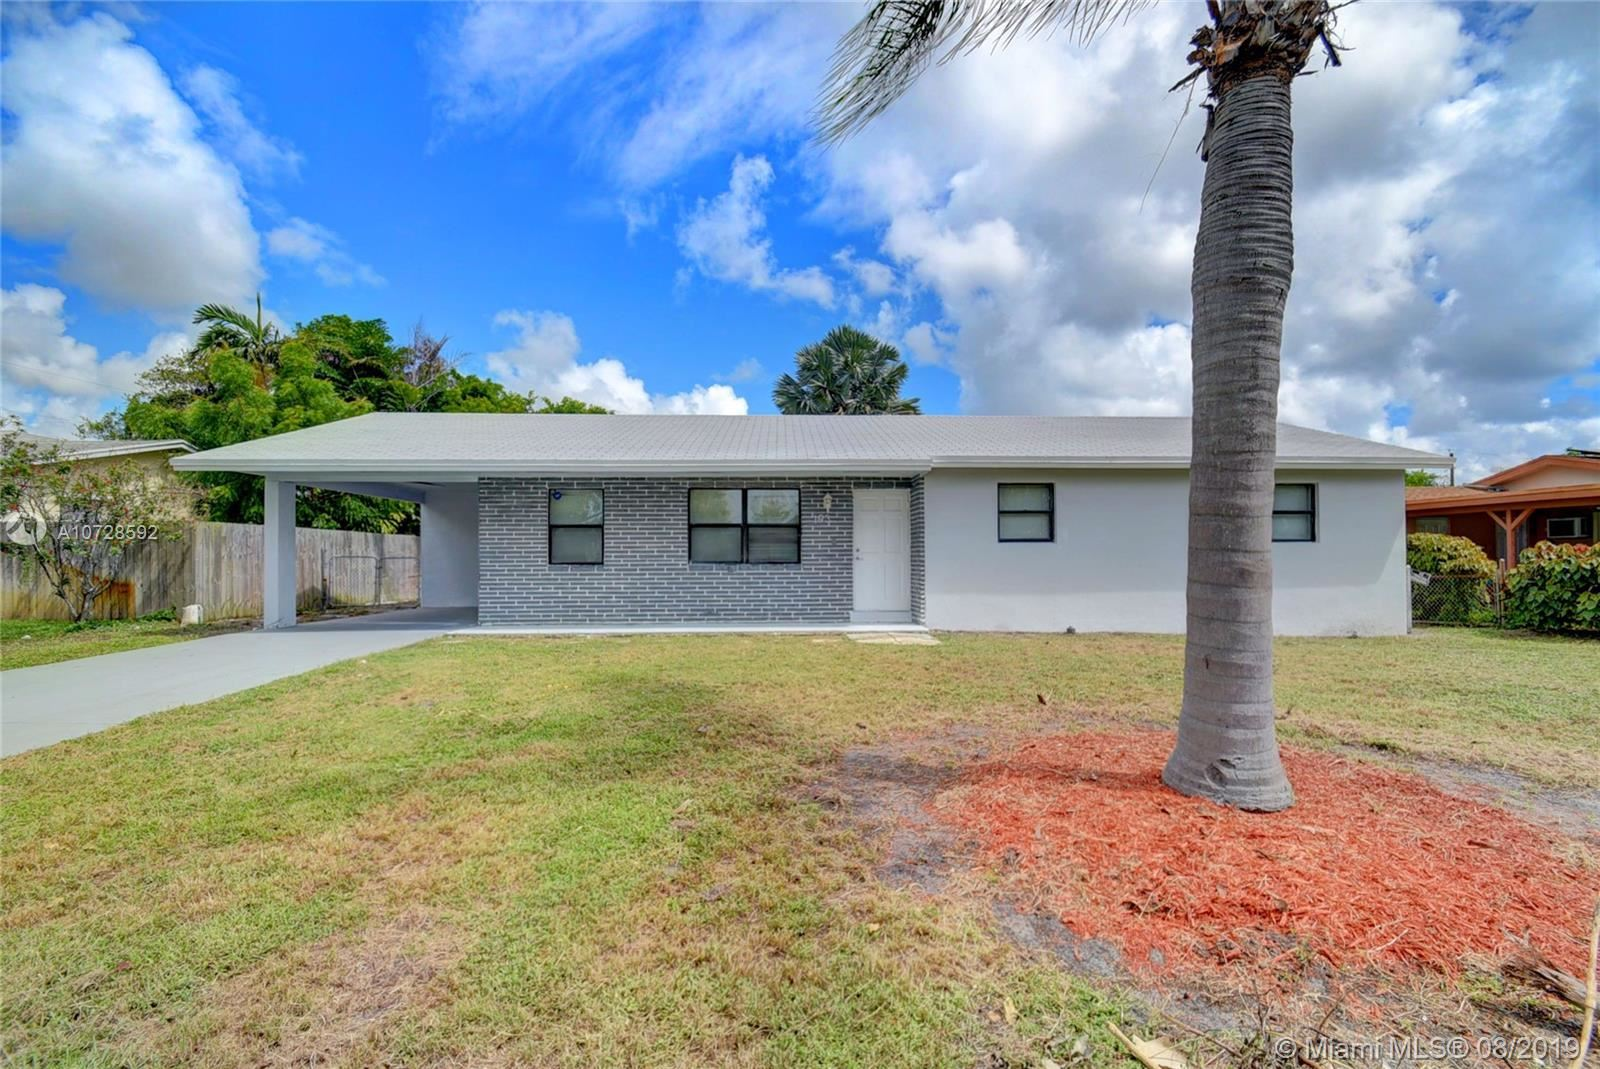 193 SE 27th Ave, Boynton Beach, FL 33435 - MLS#: A10728592